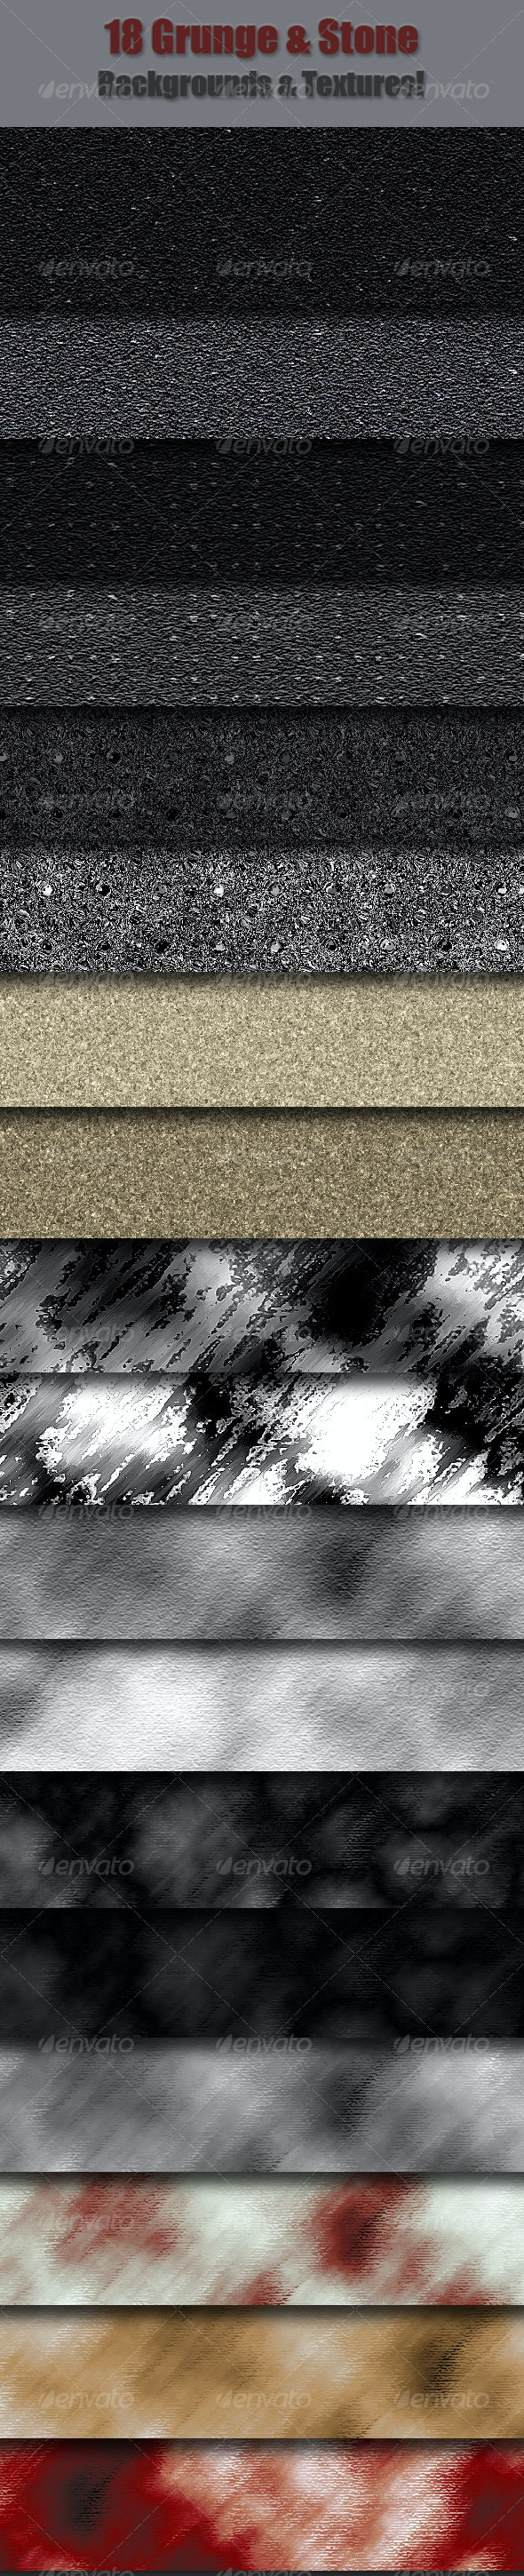 18 Grunge & Stone Textures & Backgrounds - Backgrounds Graphics